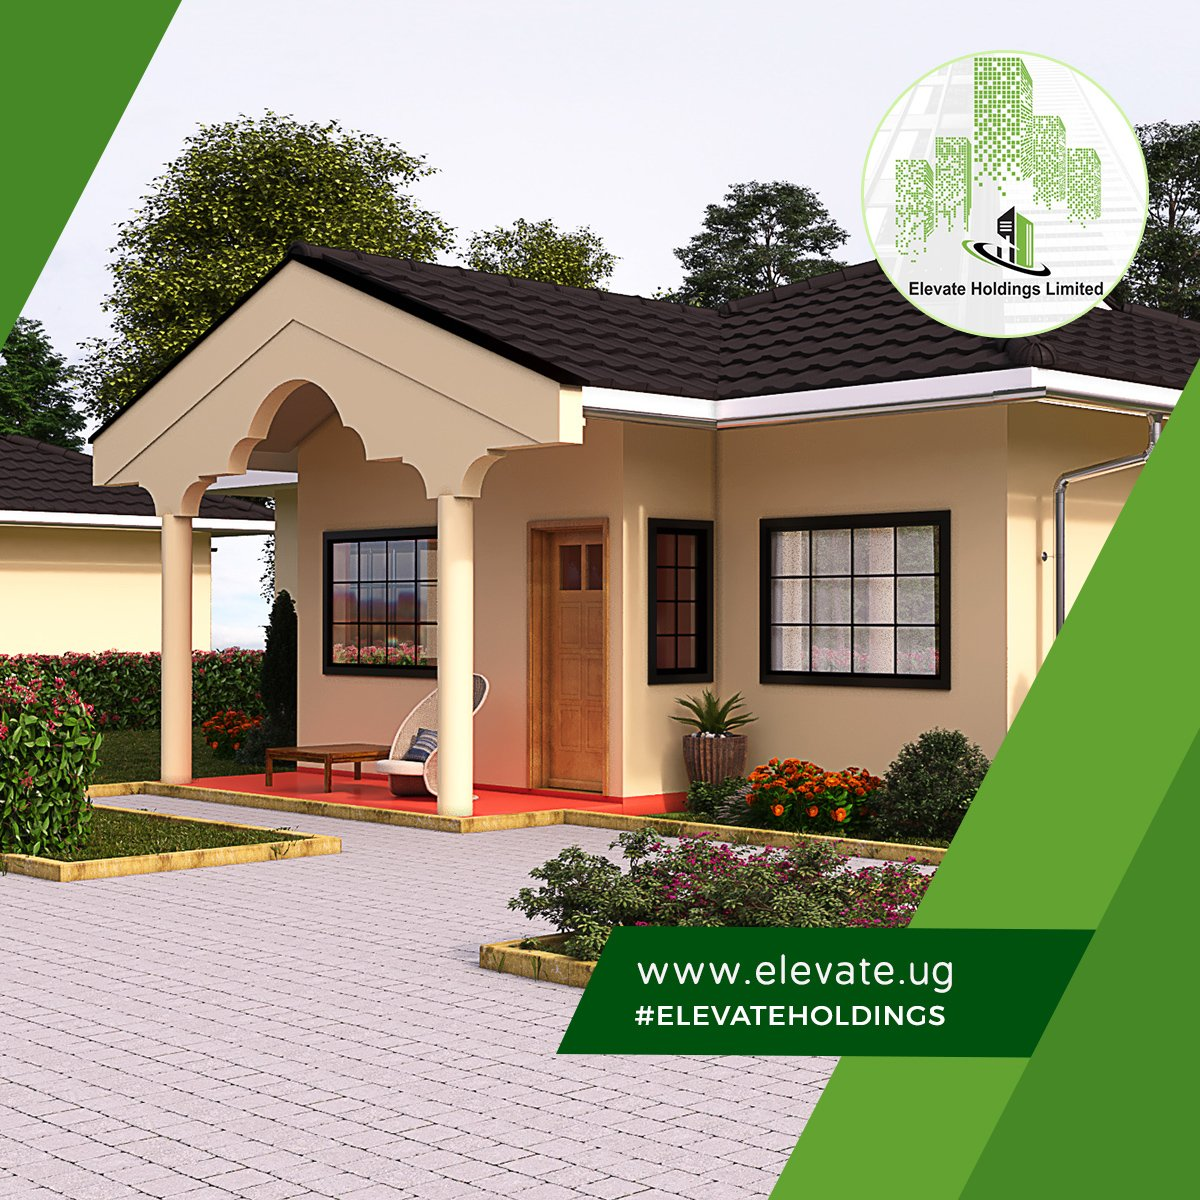 Elevate Holdings Ltd On Twitter You Can Trust Us To Execute Your Vision For A Beautiful Home With Innovative Sustainable Design And Construction Solutions Https T Co Fctf7eqtvg Construction Architecture Design Residential Homes Commercial